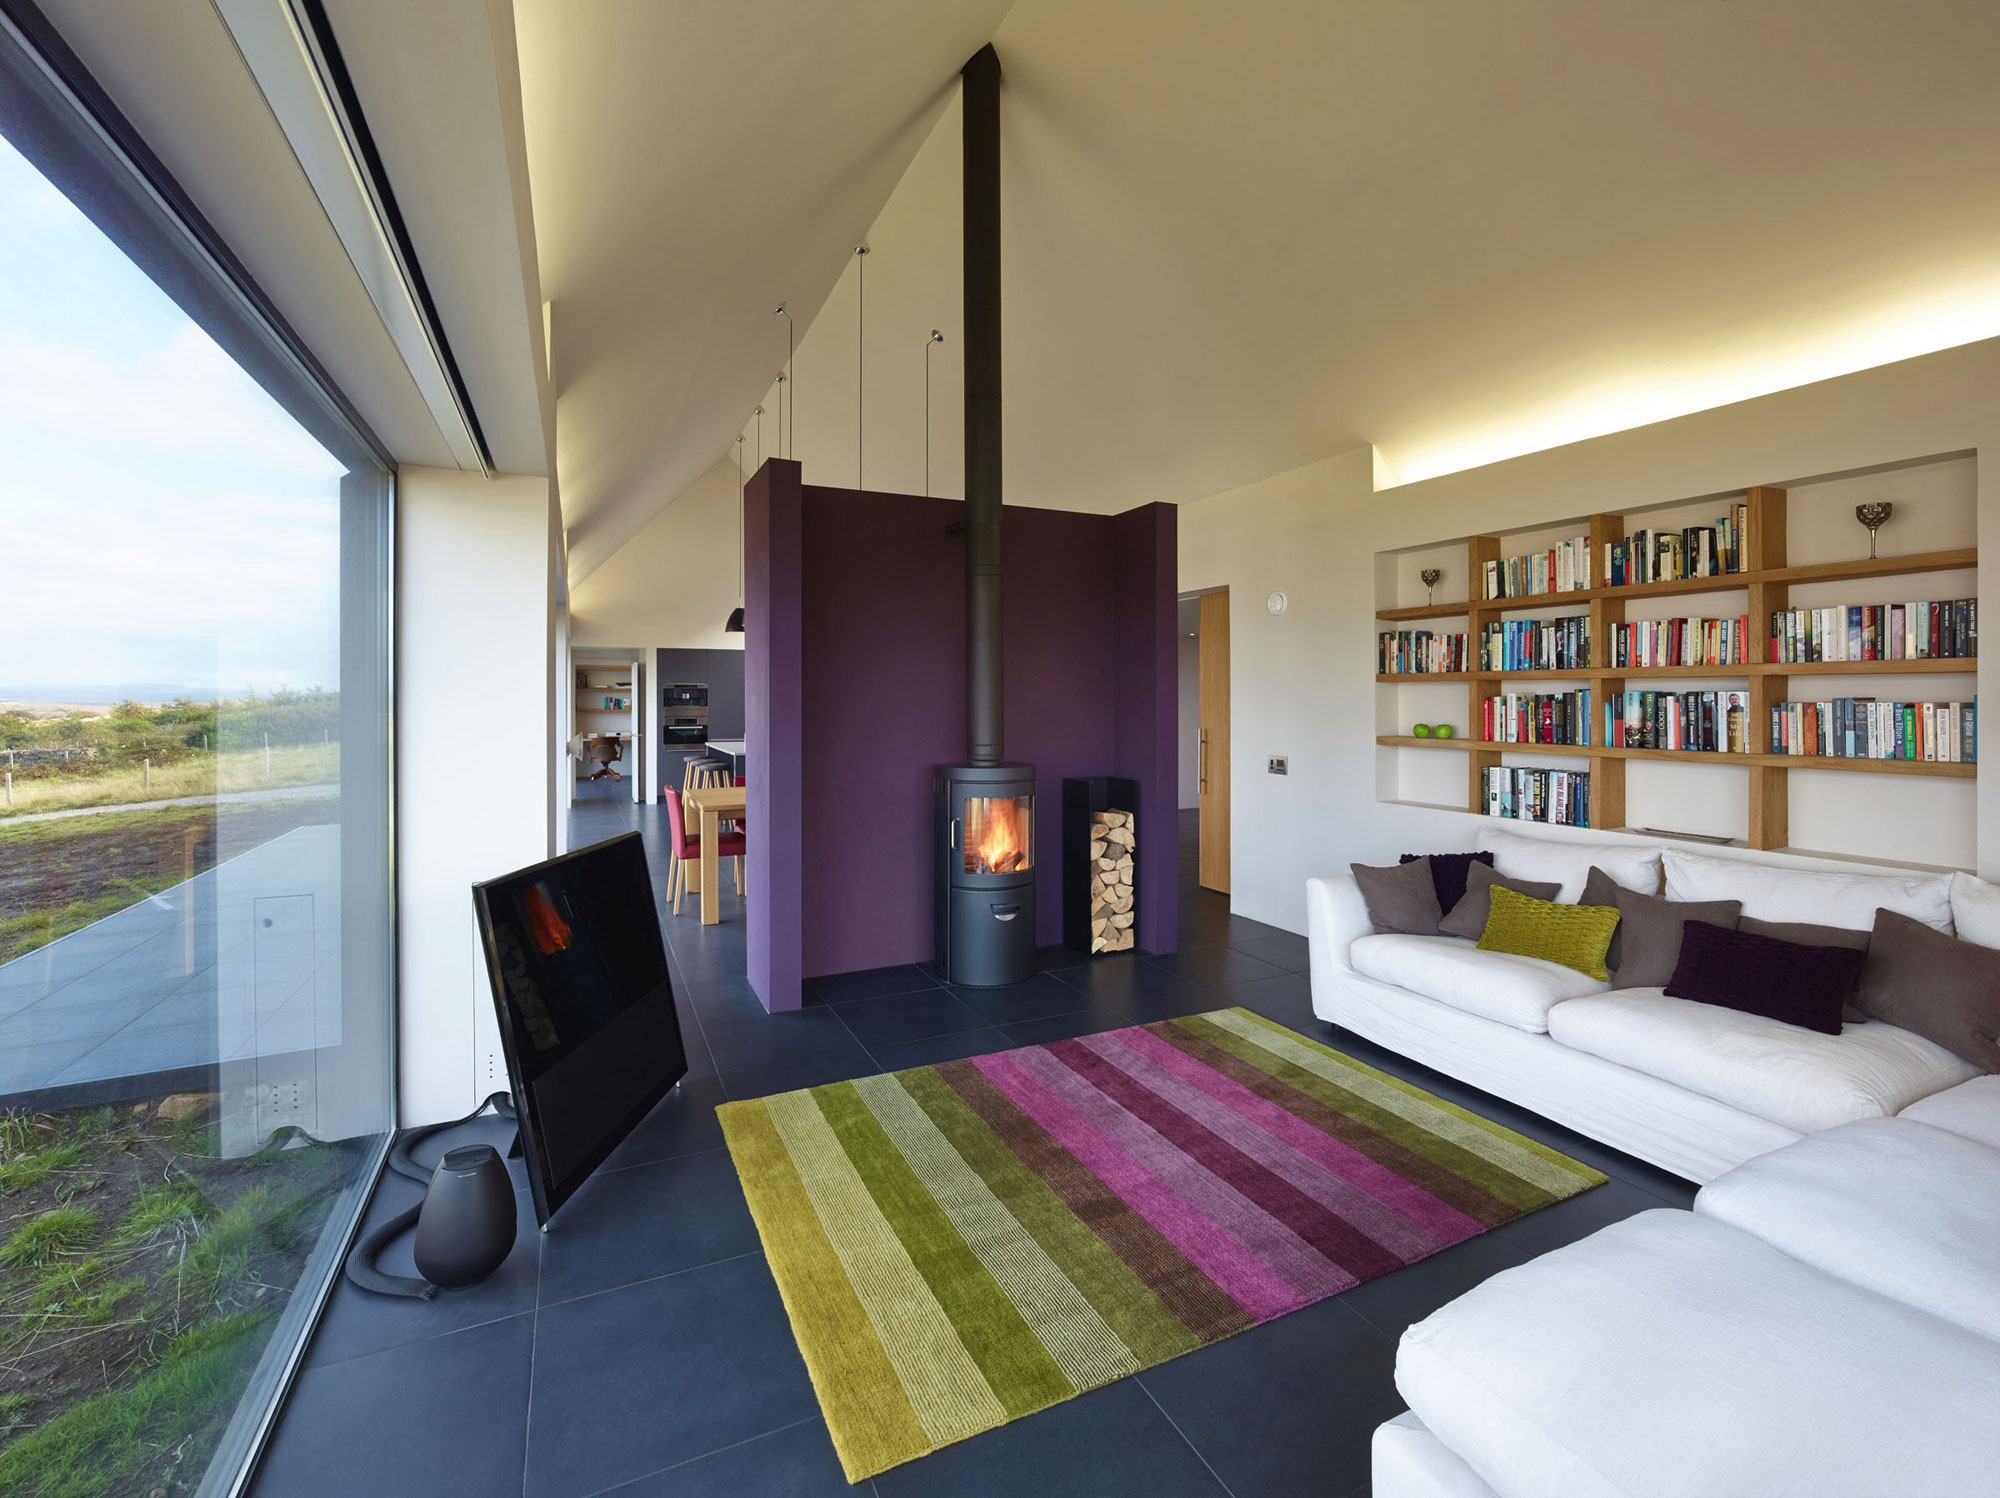 House-in-Colbost-large-lounge-area